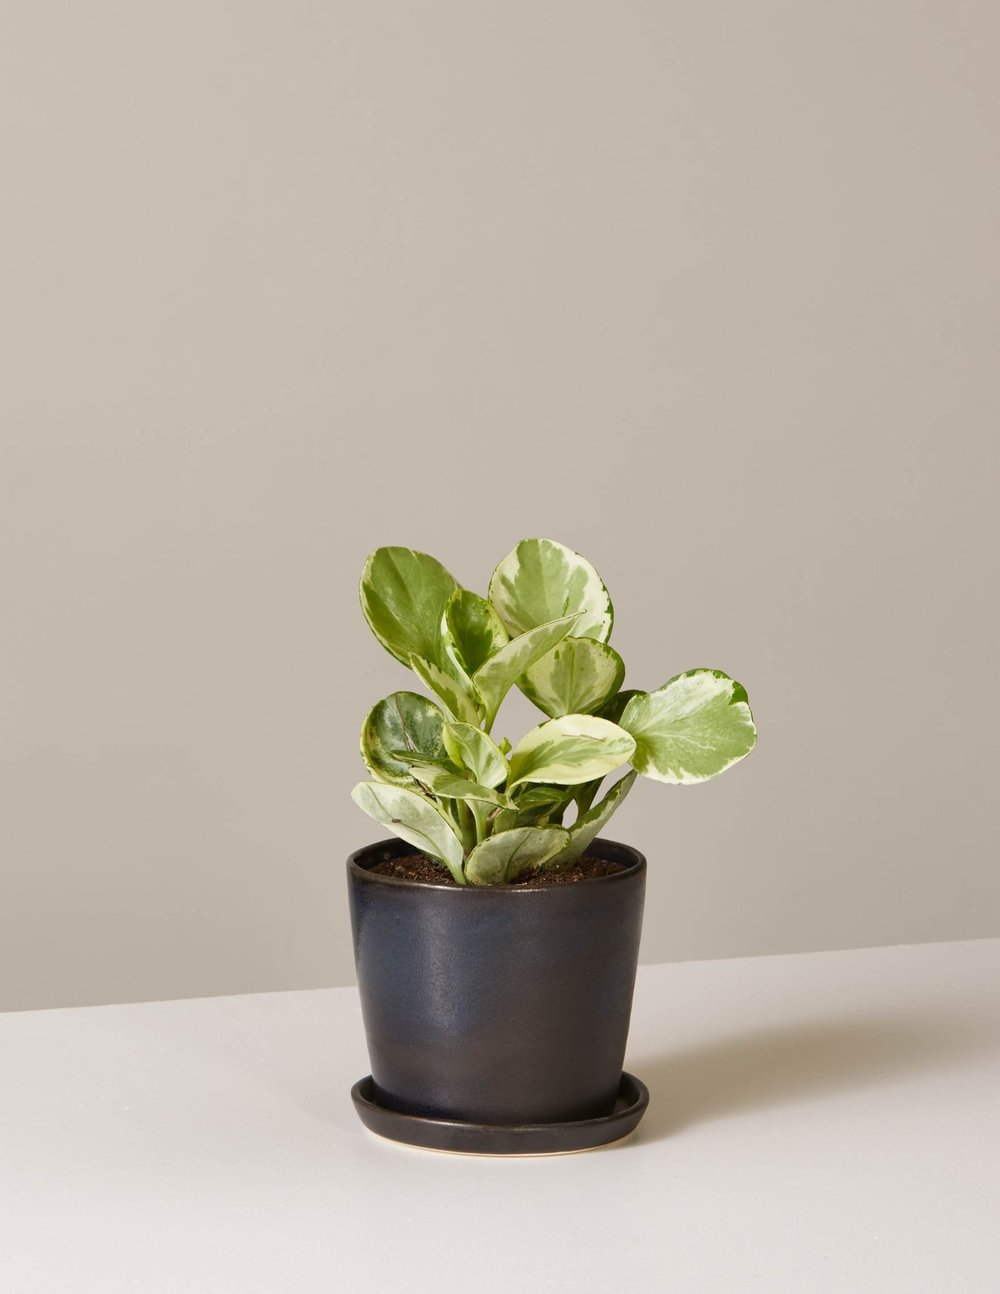 Peperomia  Marble  In August Planter, $40.50, The Sill